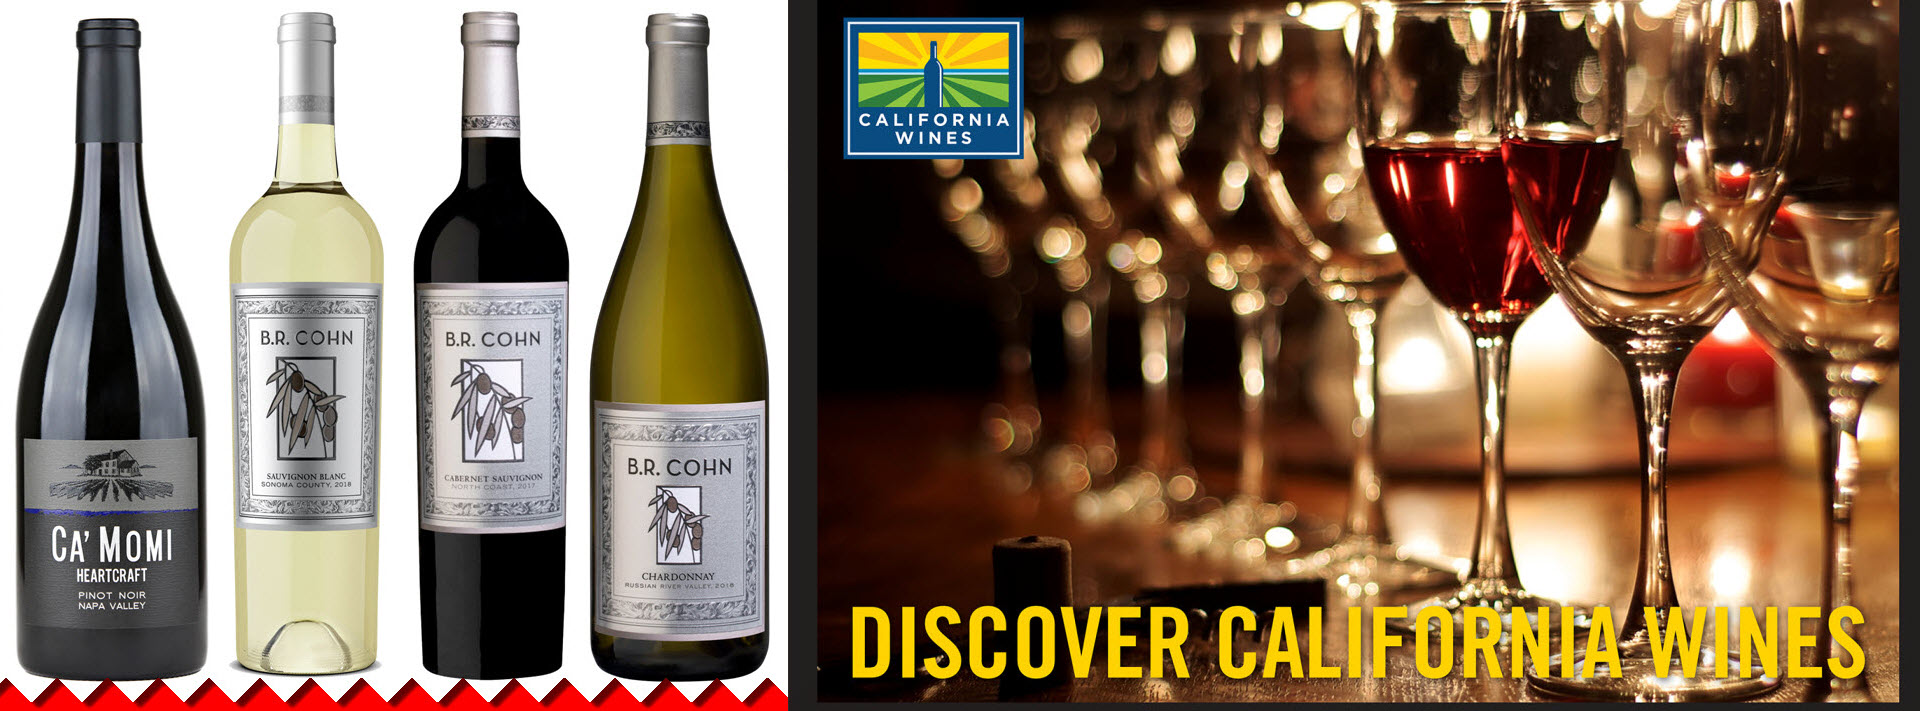 Casawines_Discover California Wines 2021